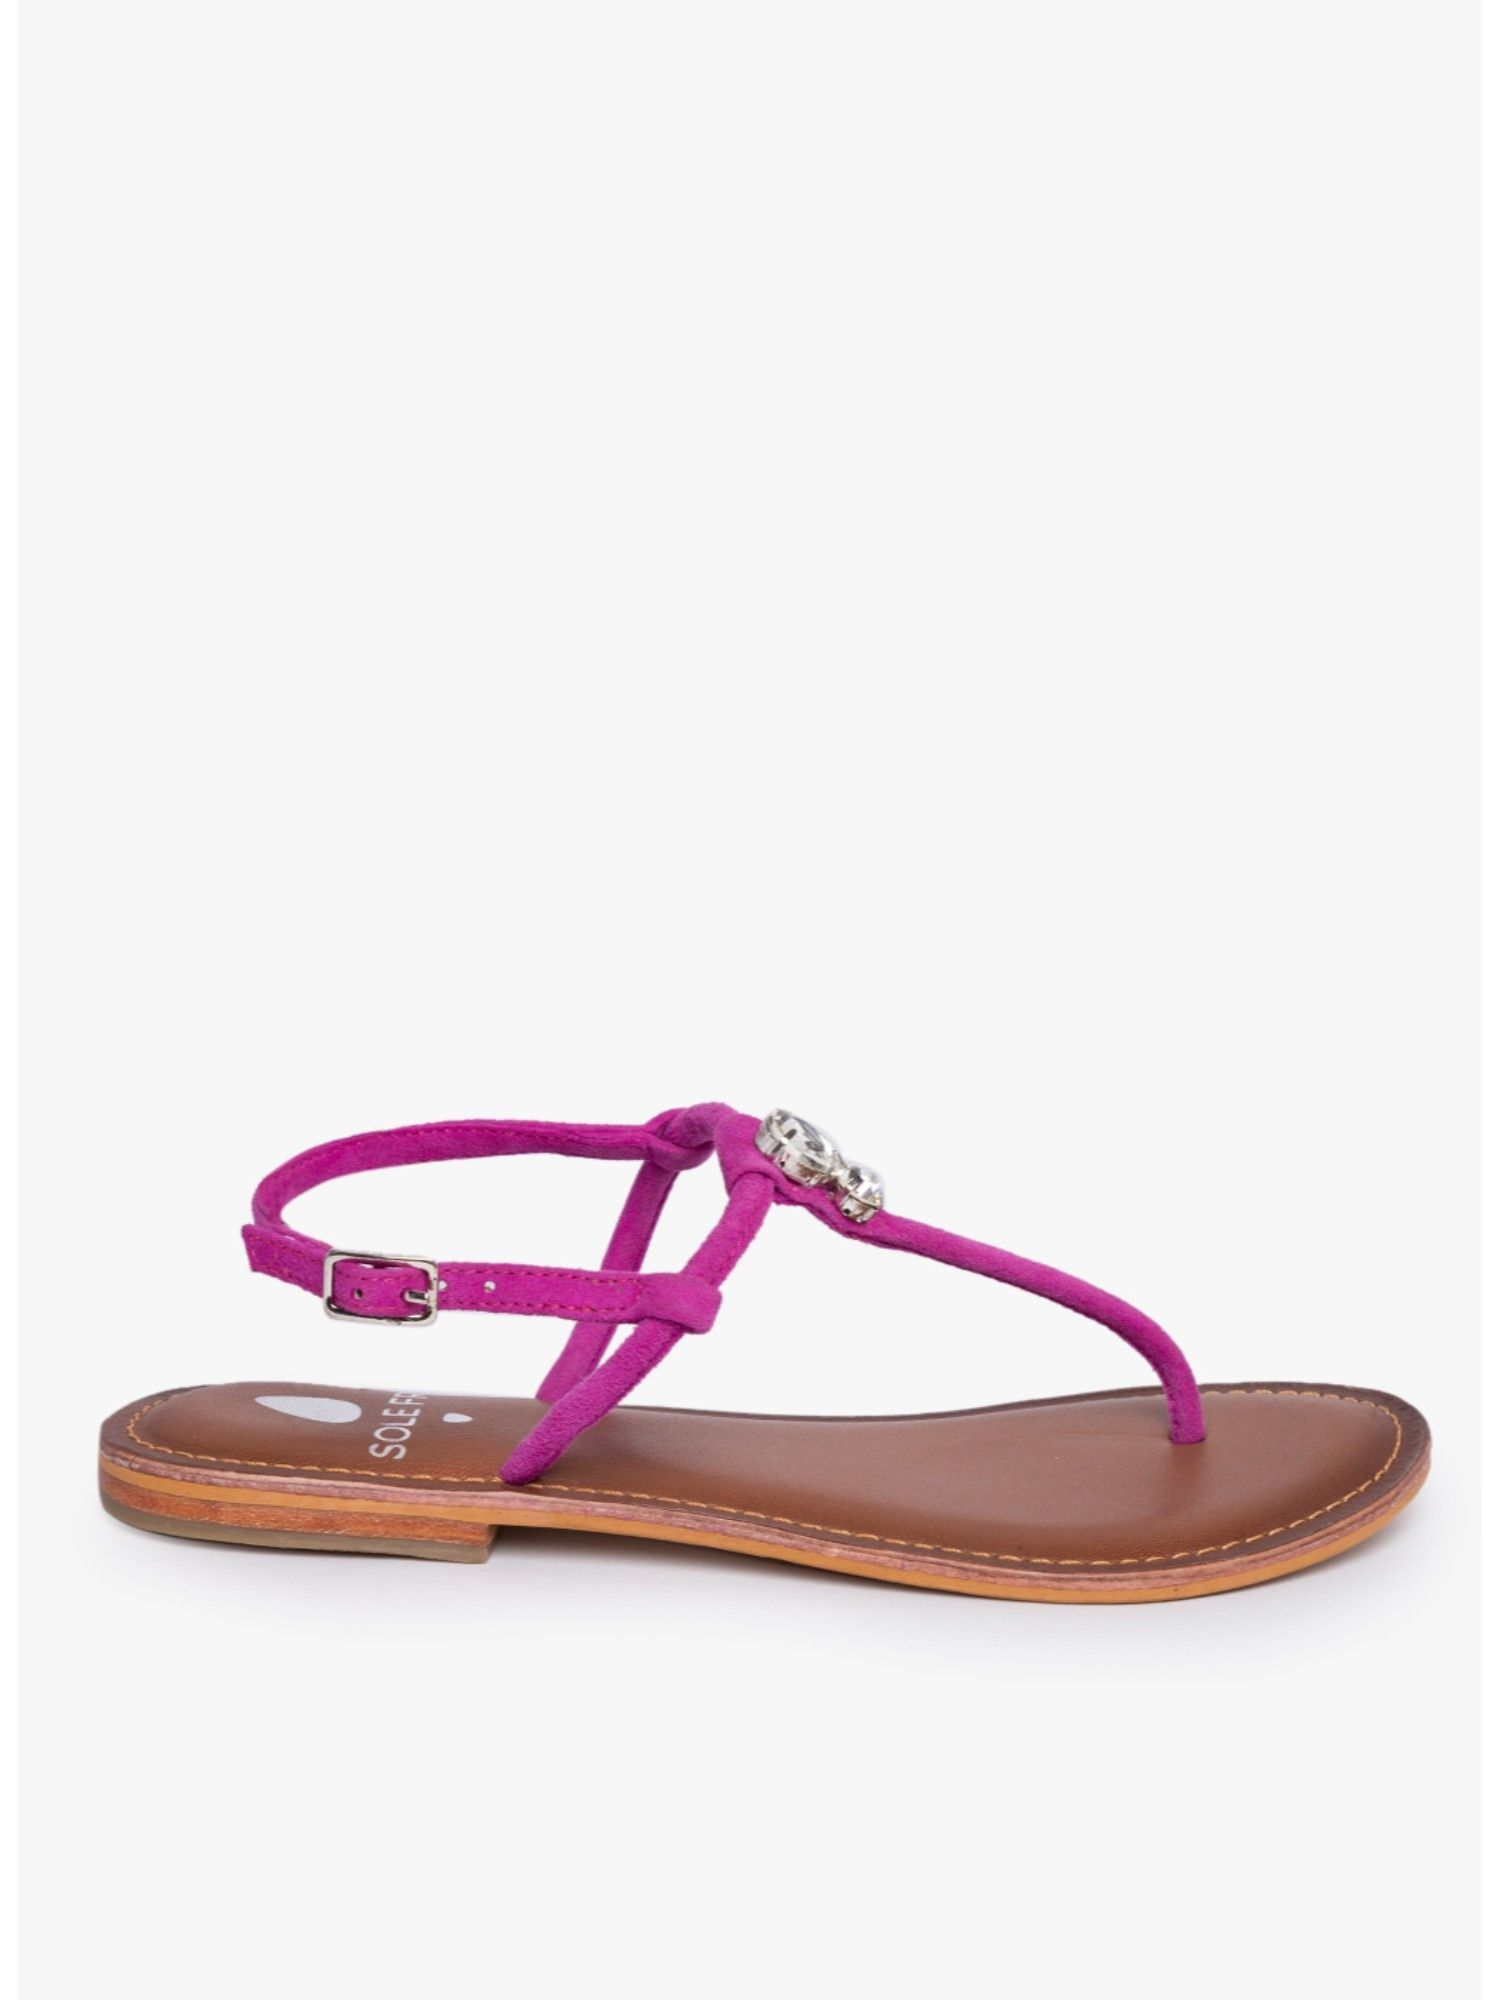 2cac8be60 Sole Fry Flats : Buy Sole Fry Nina Pink Flats Online | Nykaa Fashion.